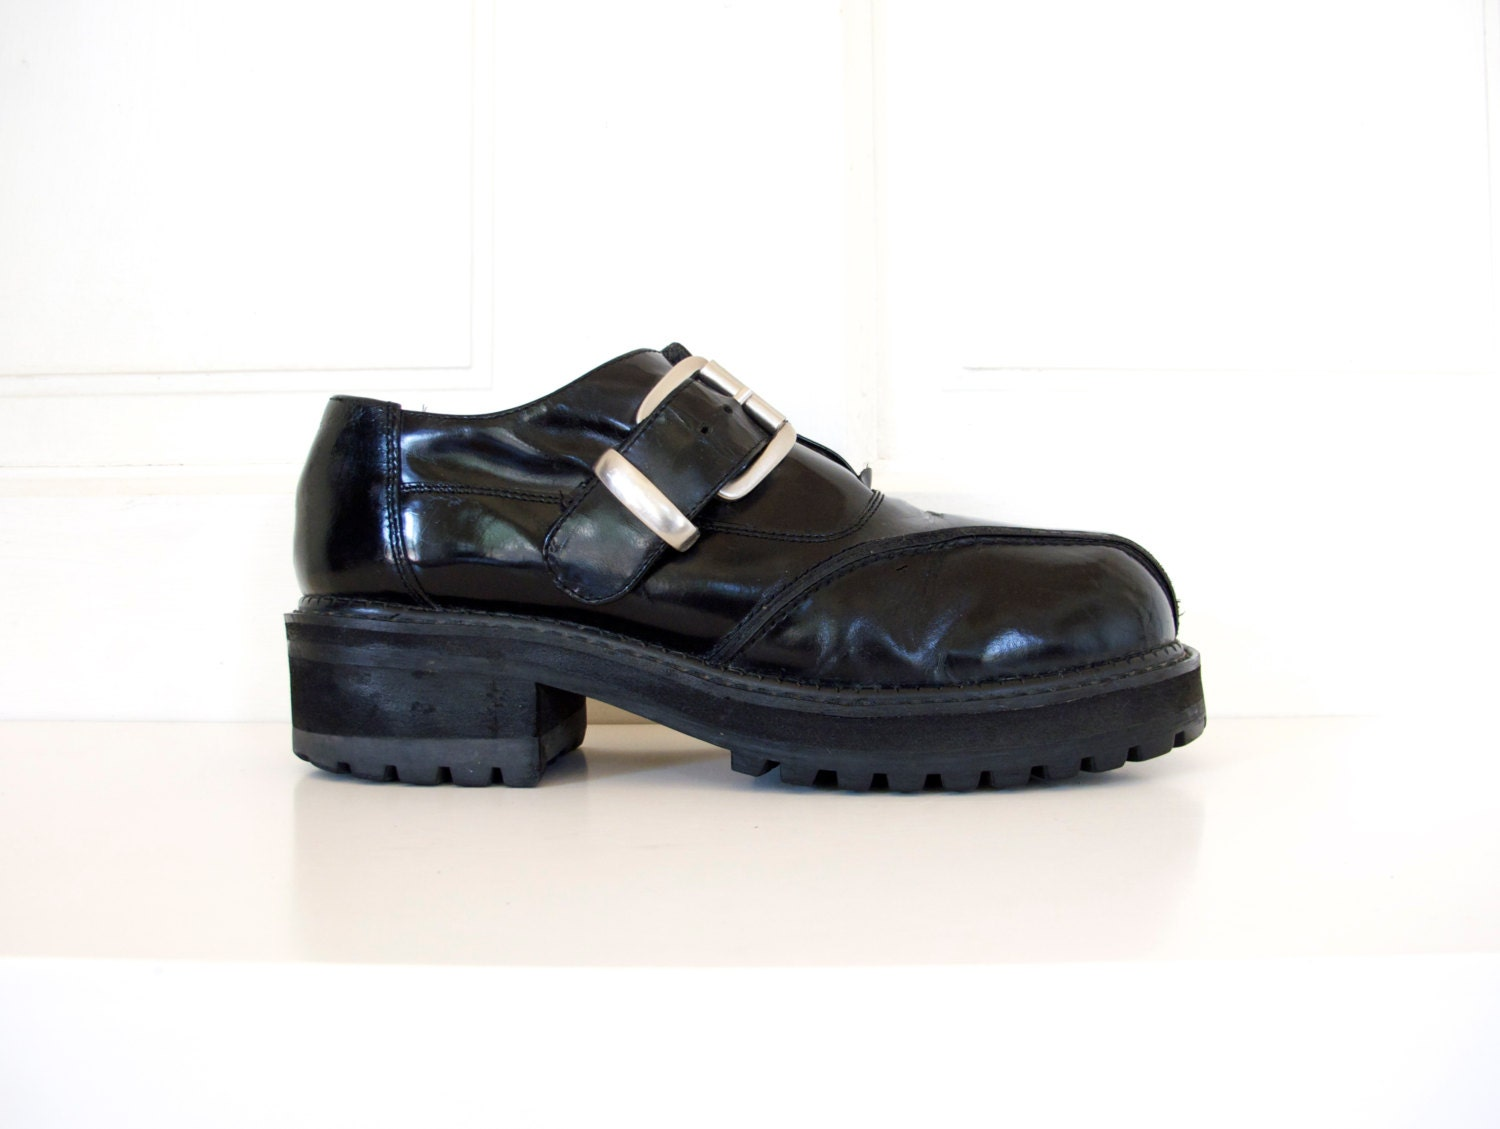 90s s chunky platform buckle shoes black leather